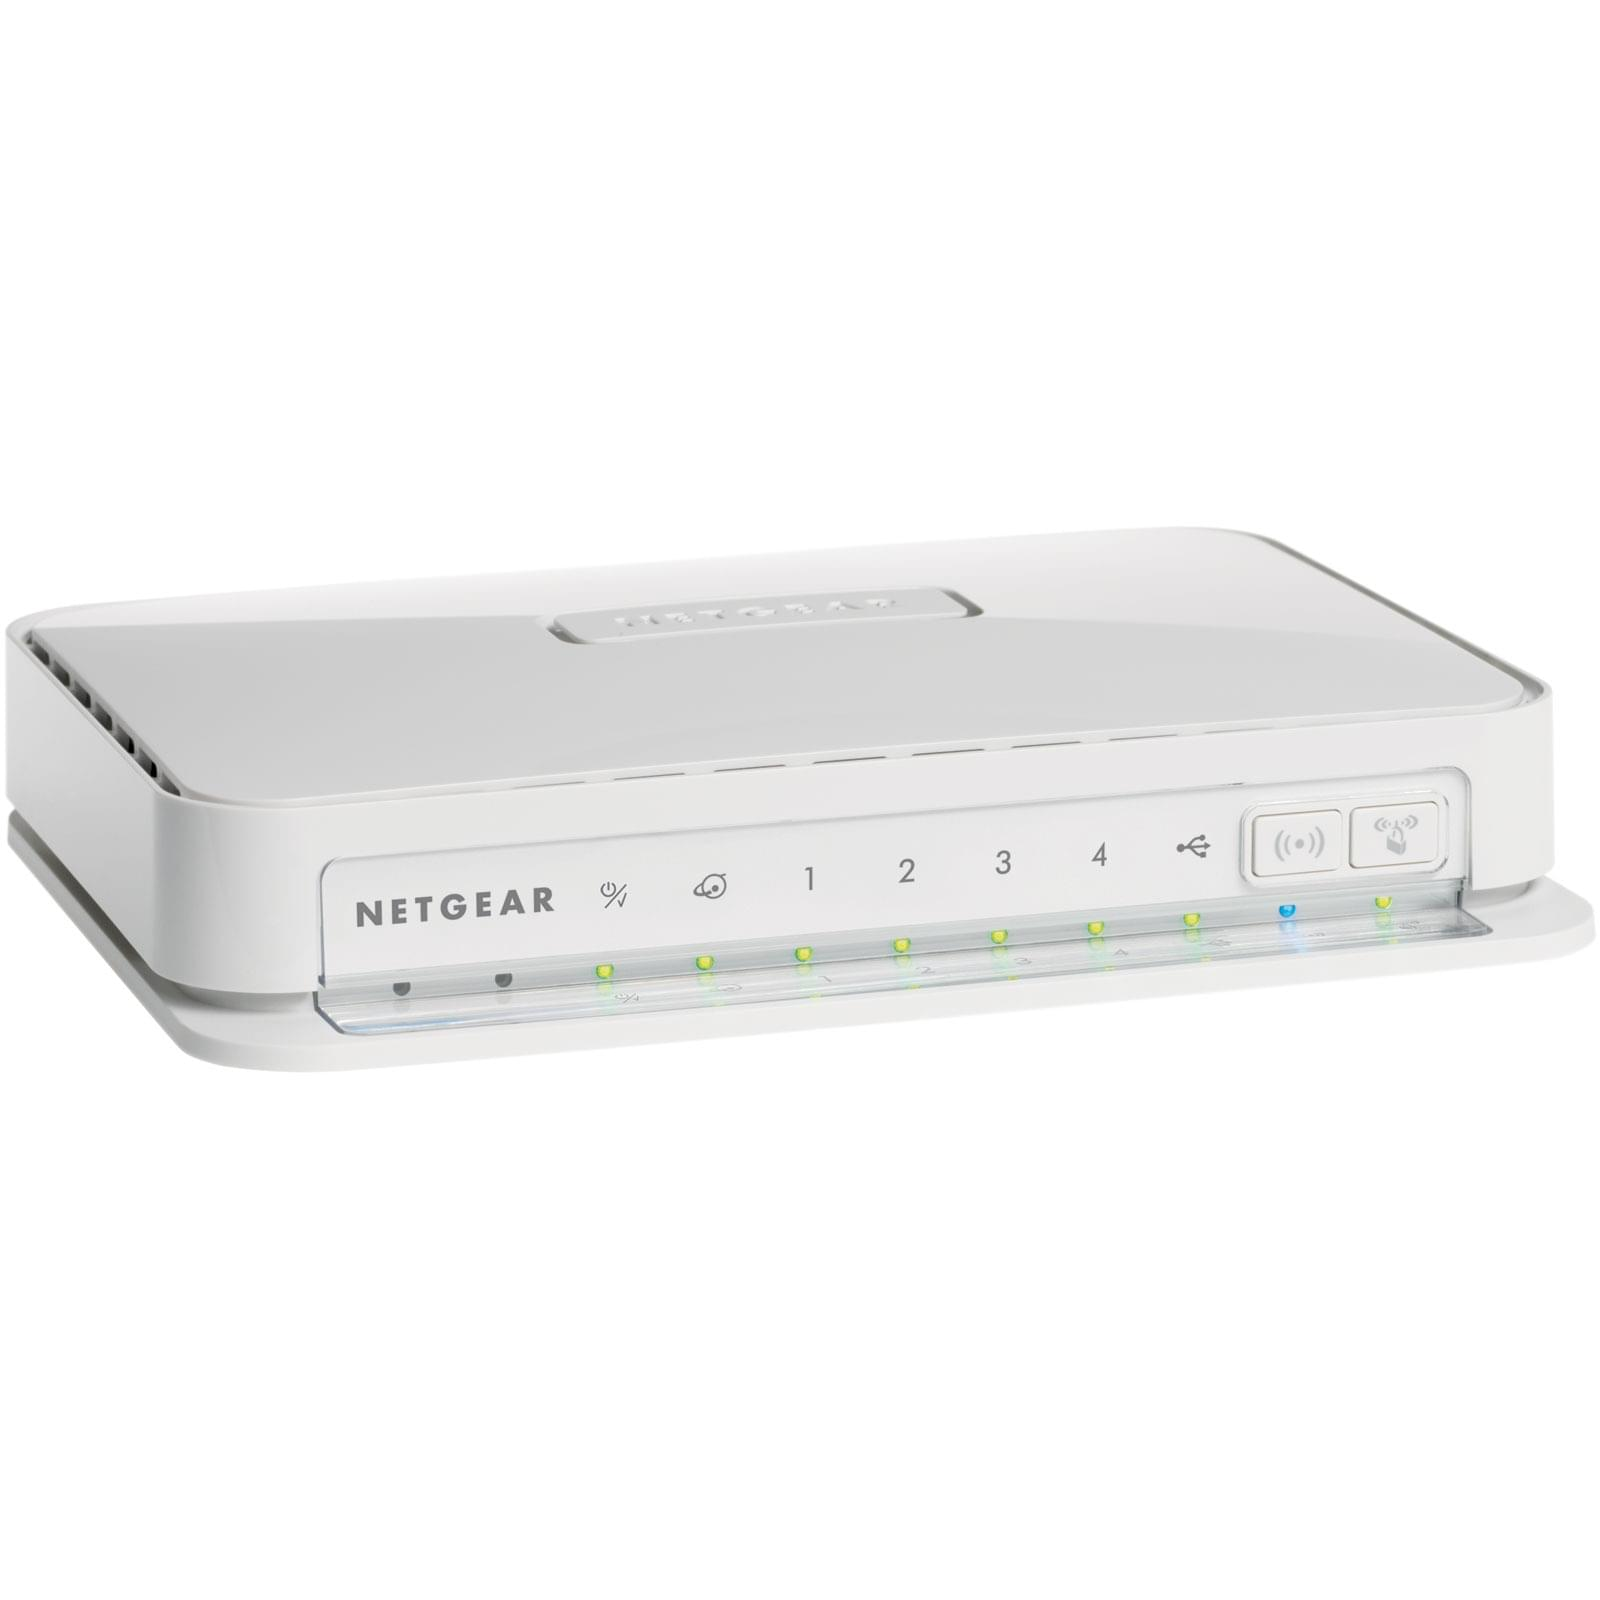 Netgear WNR2200-100 - Switch 4 ports/WiFi 300M - Routeur Netgear - 0